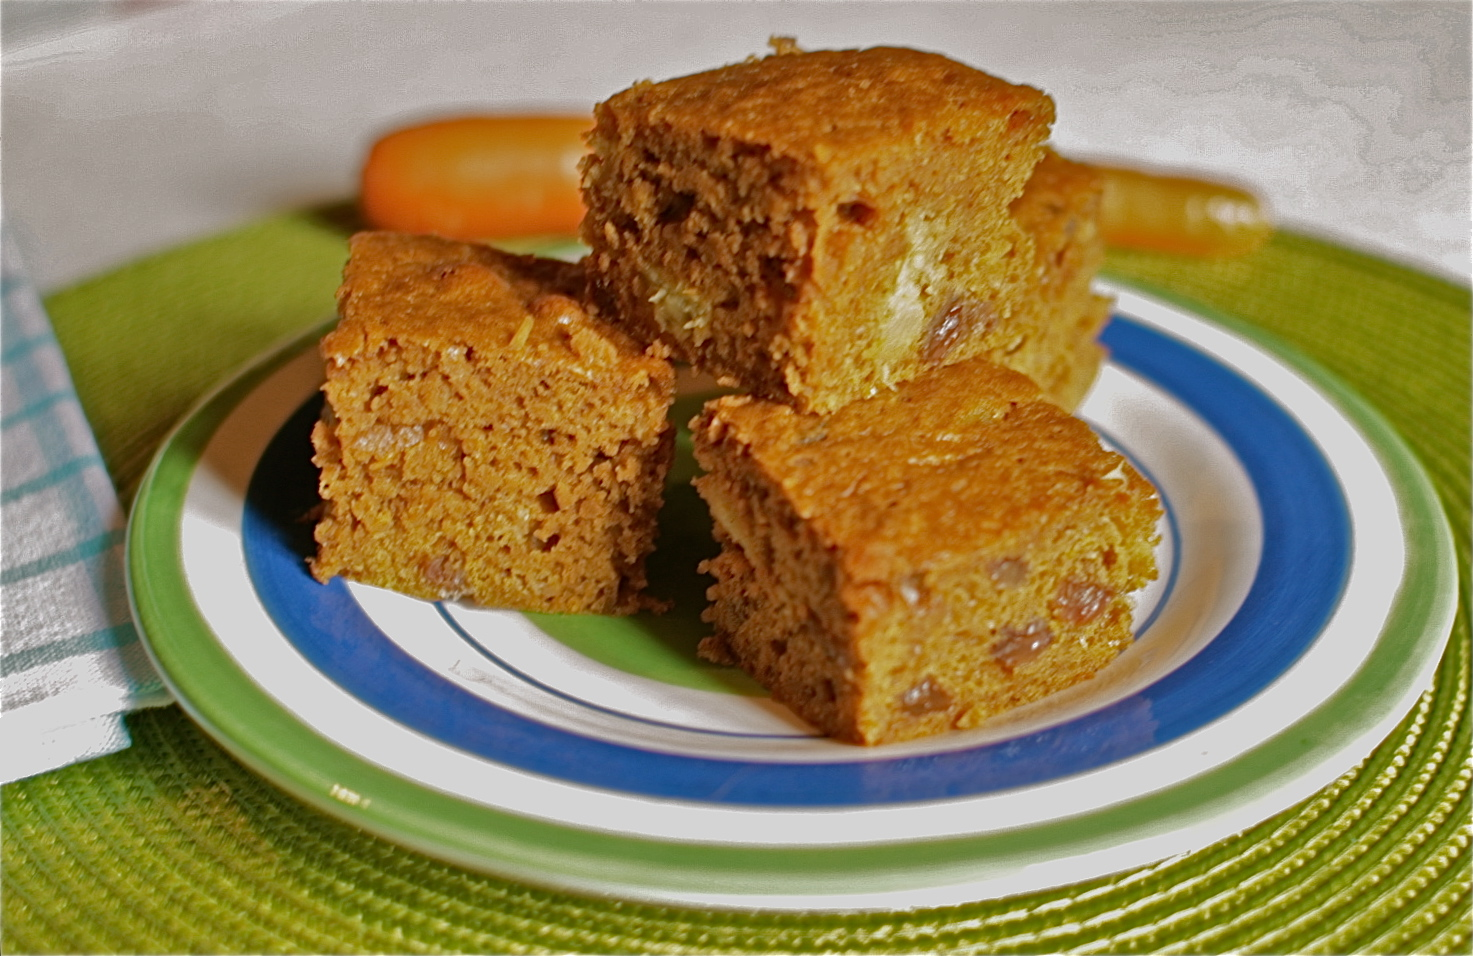 Carrot Cake Recipe Uk Healthy: A Super-Healthy Carrot, Pineapple And Coconut Oil Cake